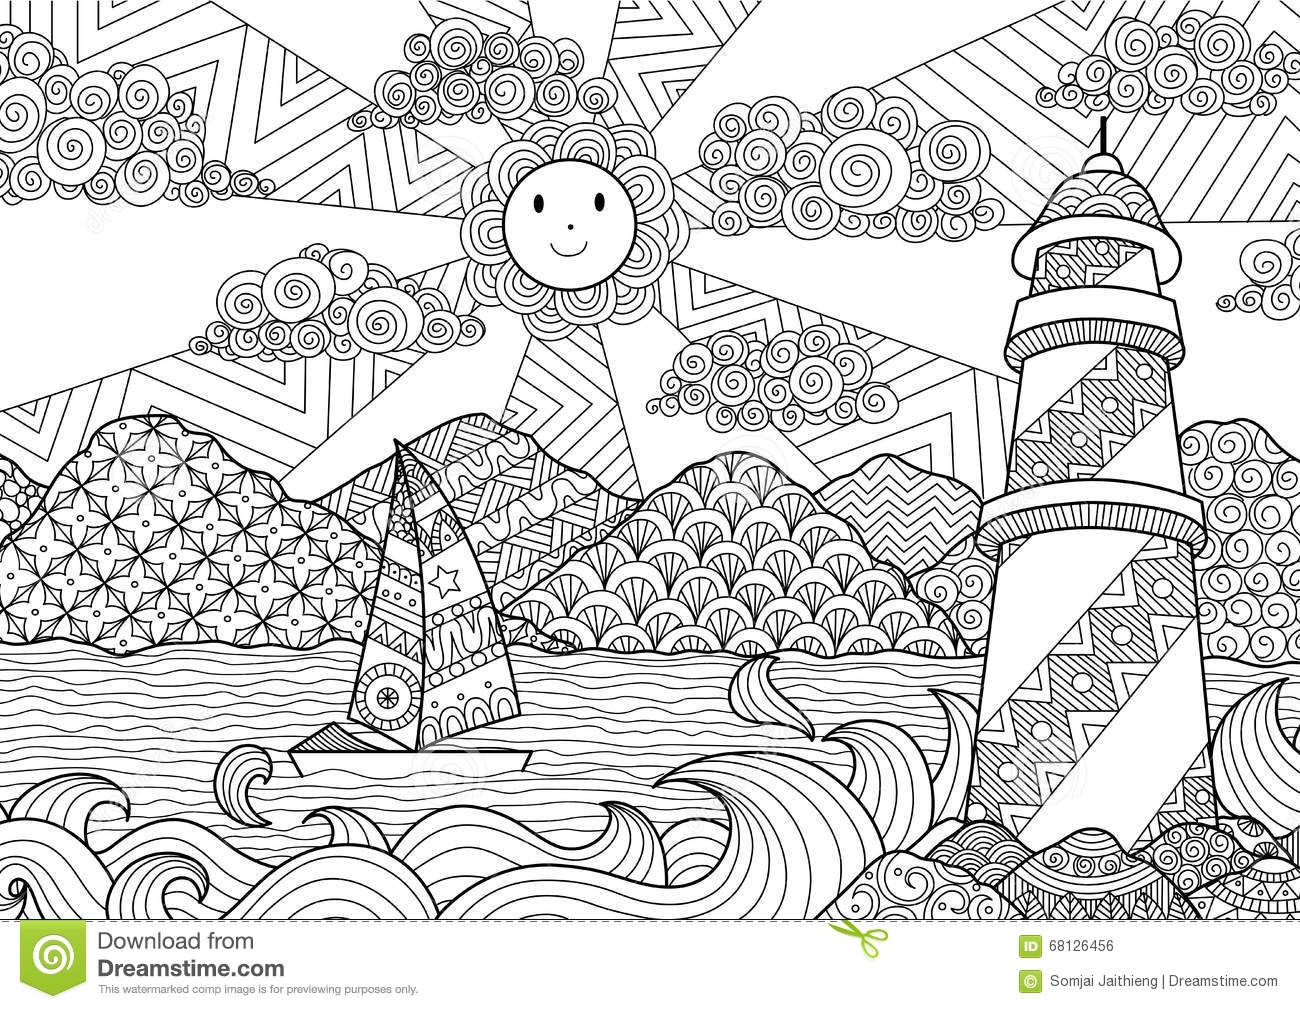 Seascape Line Art Design For Coloring Book For Adult, Anti Stress